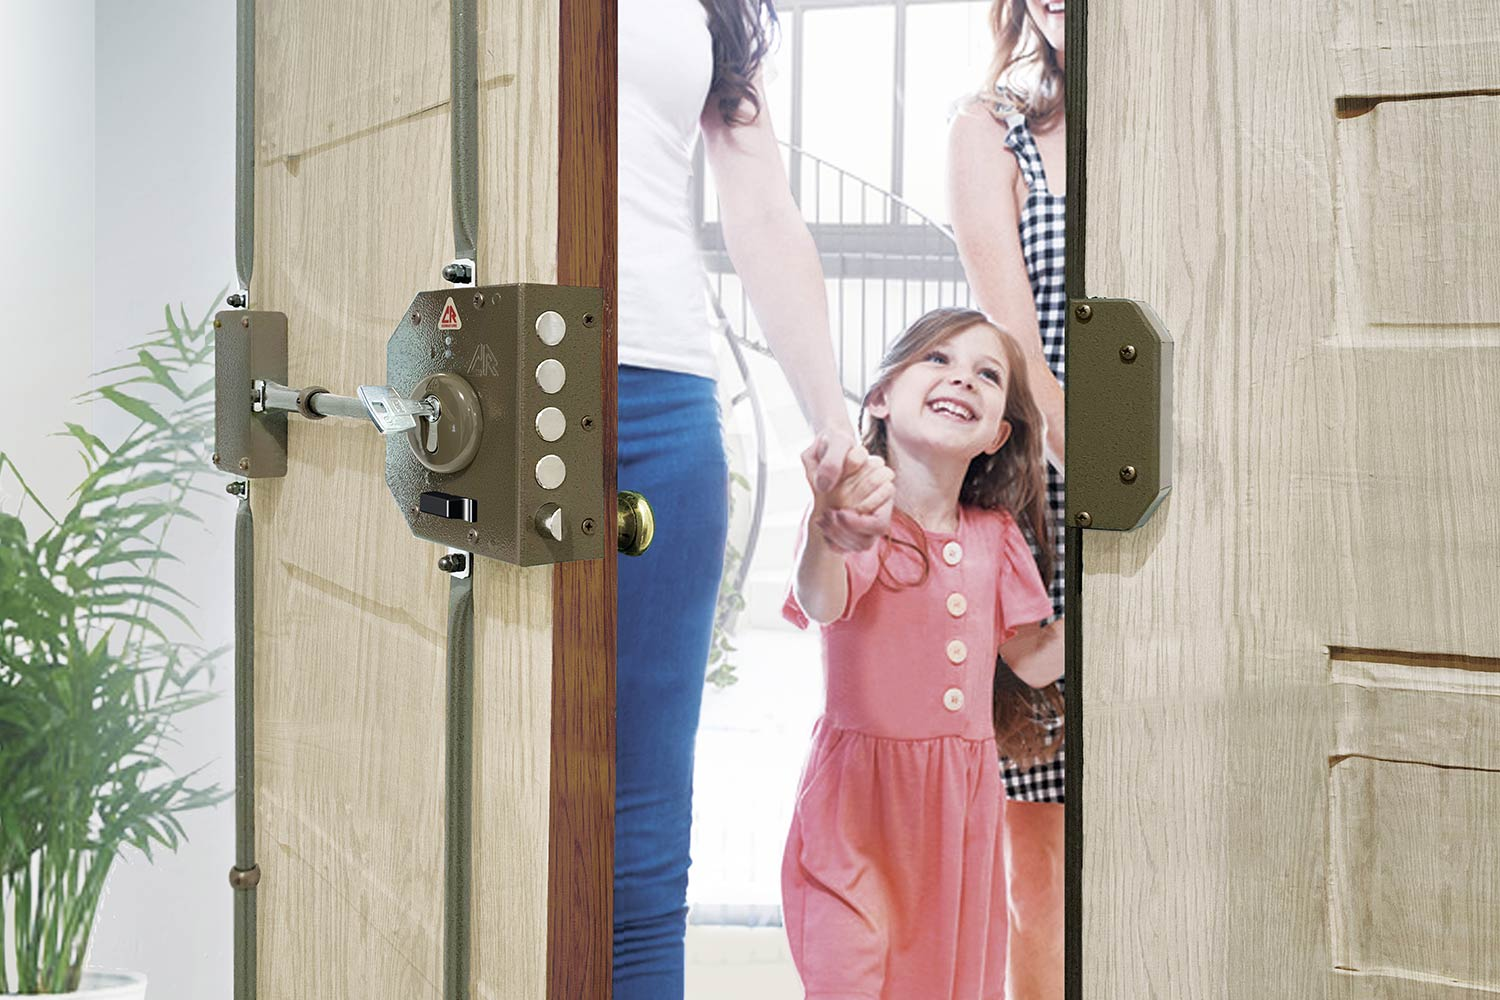 two women and a girl entering the house by opening the wooden door protected by a CR lock